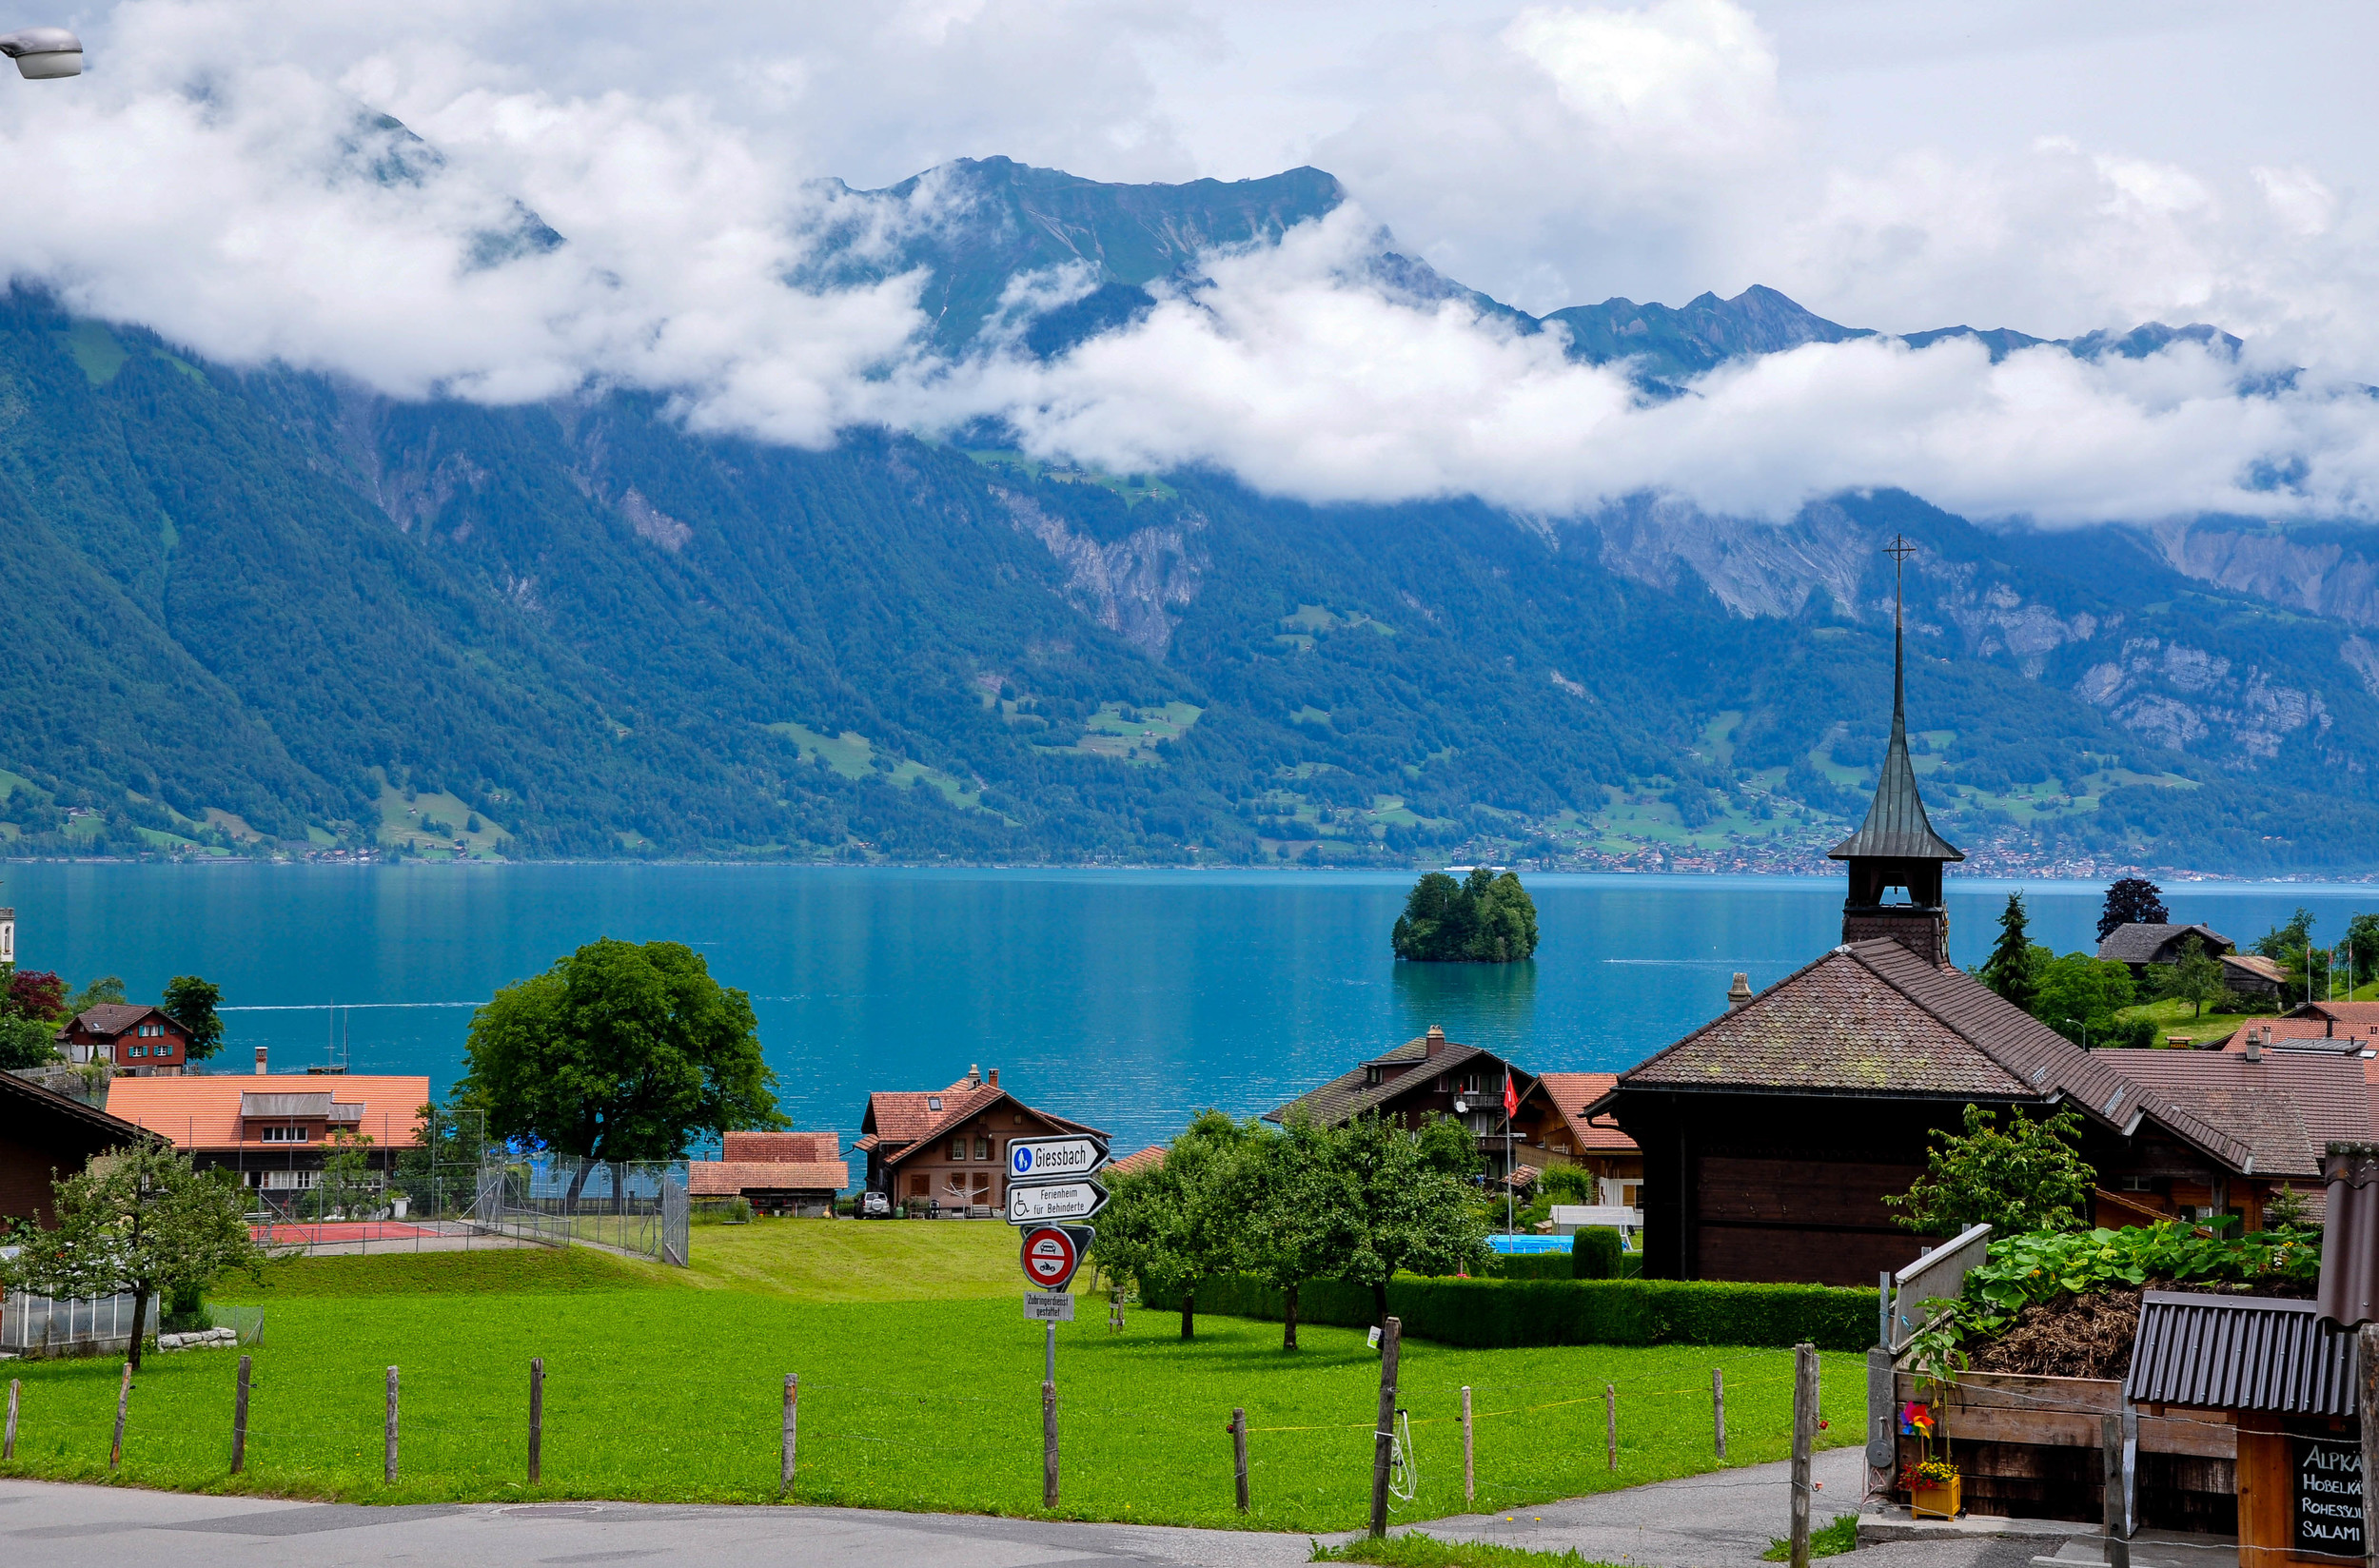 View of Lake Brienz from Iseltwald  ©Copyright 2015 Bridget Barnes